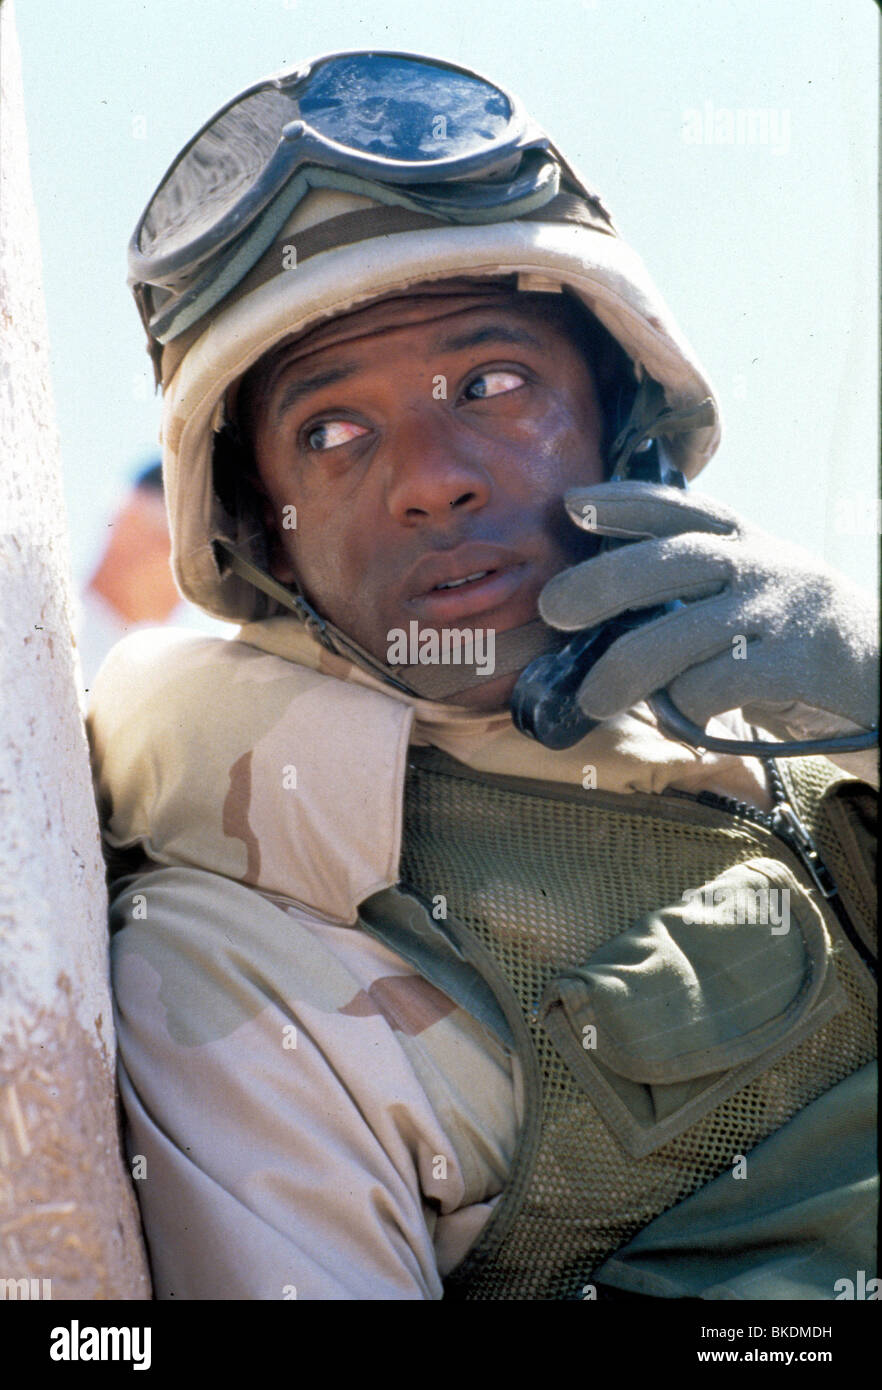 RULES OF ENGAGEMENT (2000) BLAIR UNDERWOOD RULE 071 - Stock Image